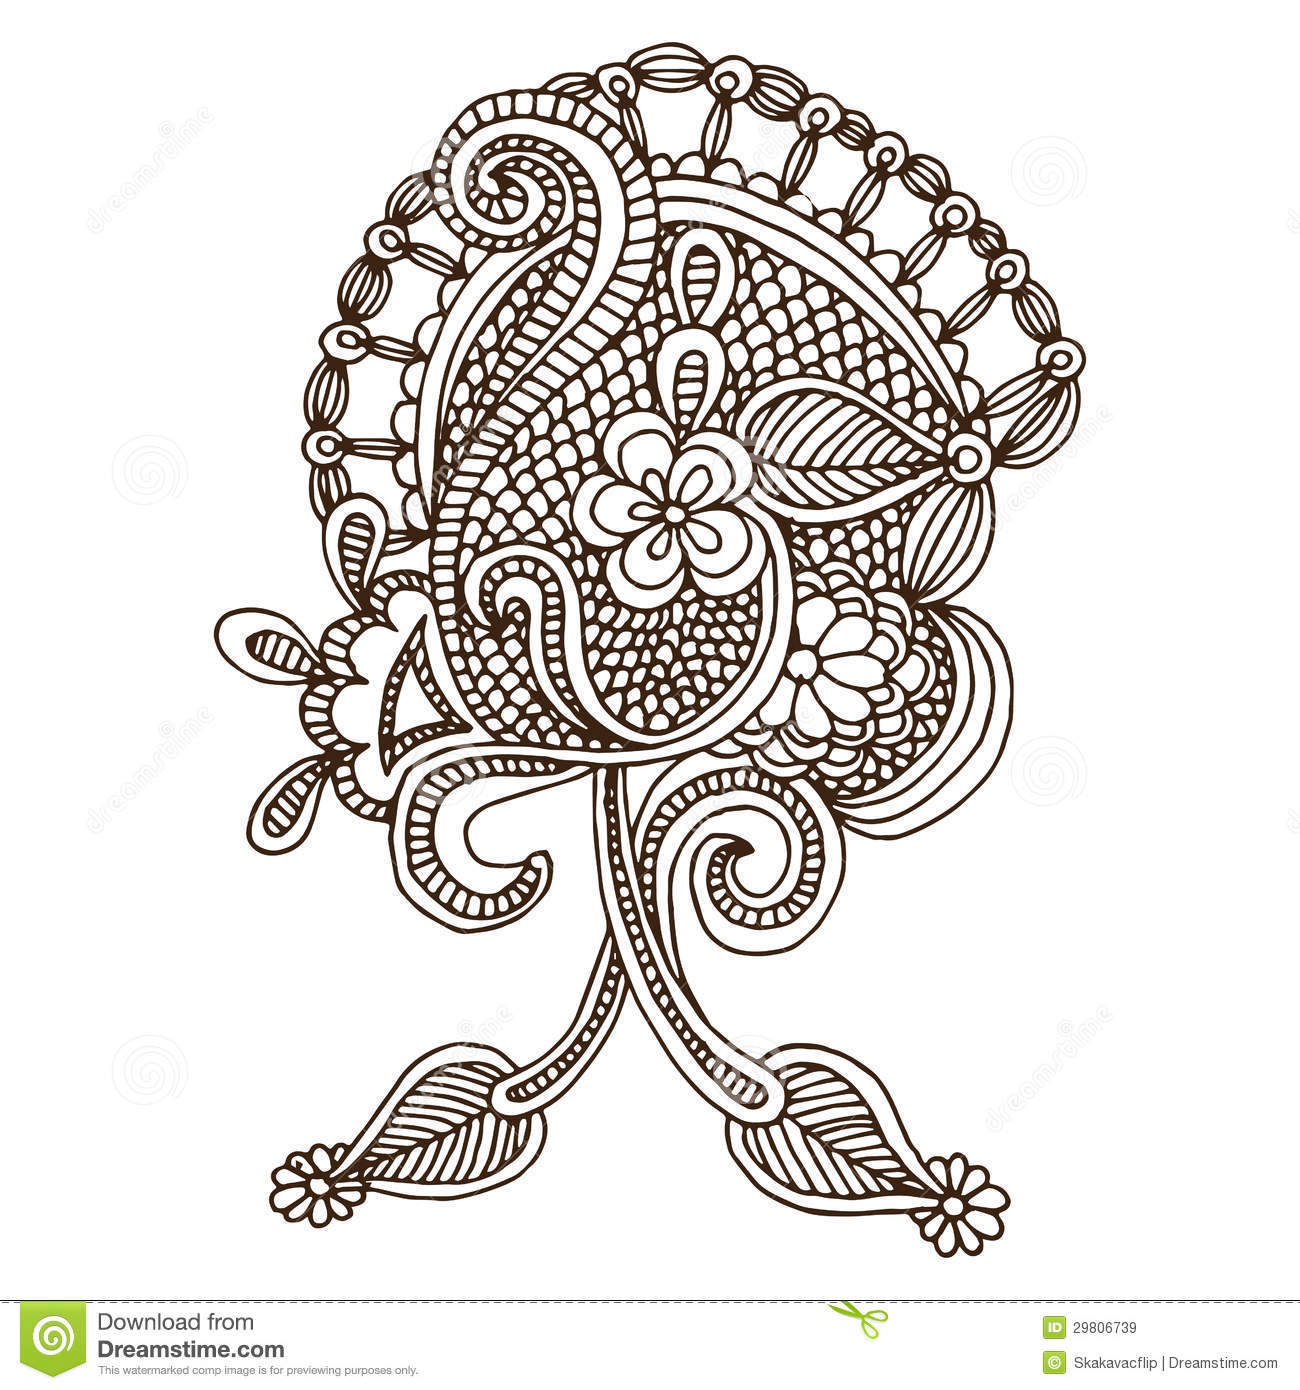 Line Drawing Flower Designs : Neckline embroidery design stock illustration image of